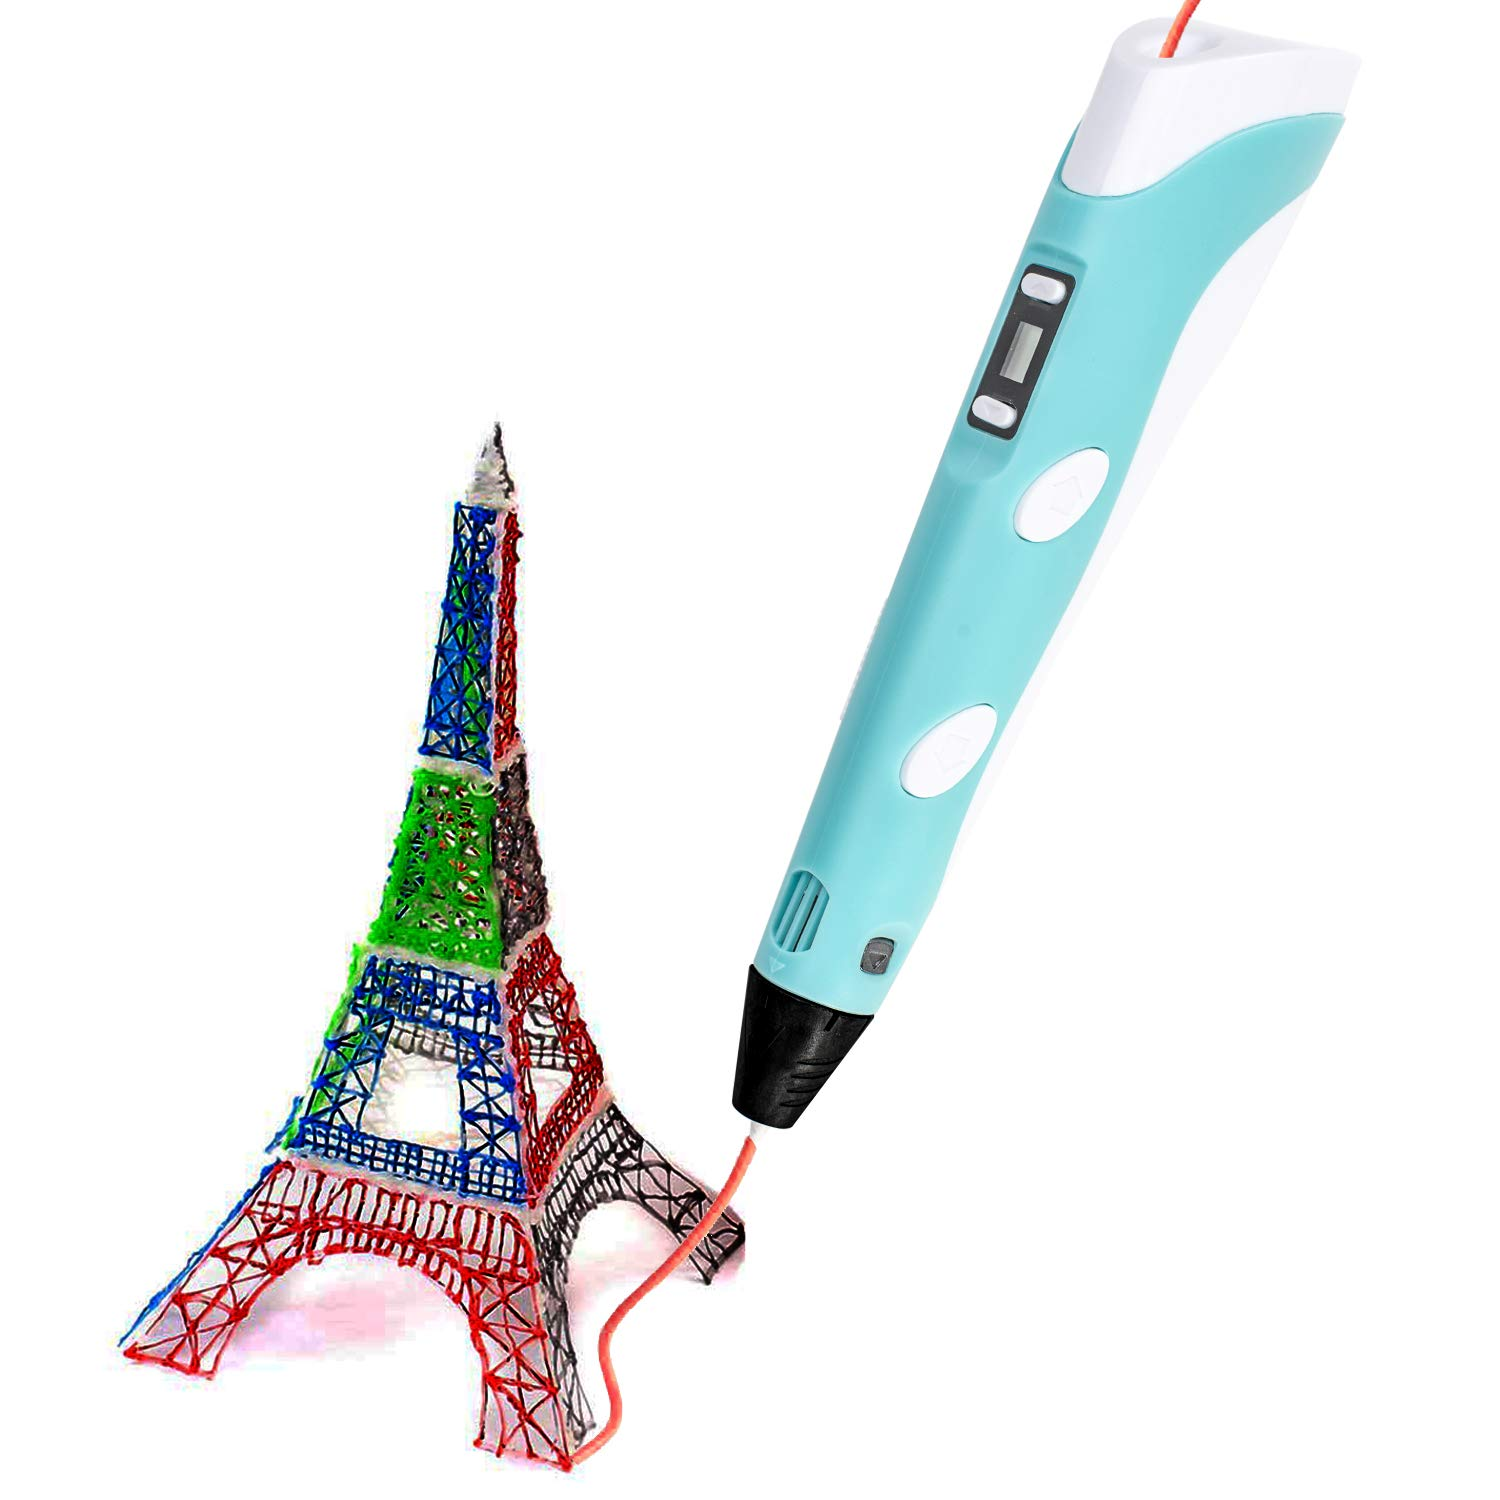 DREAMT Blue 3D Drawing Printer Pen for Arts Crafts Model DIY Compatible with PLA ABS Filament 3D Printing Pen with 3 Colors PLA Filament Refills 3D Pen for Kids